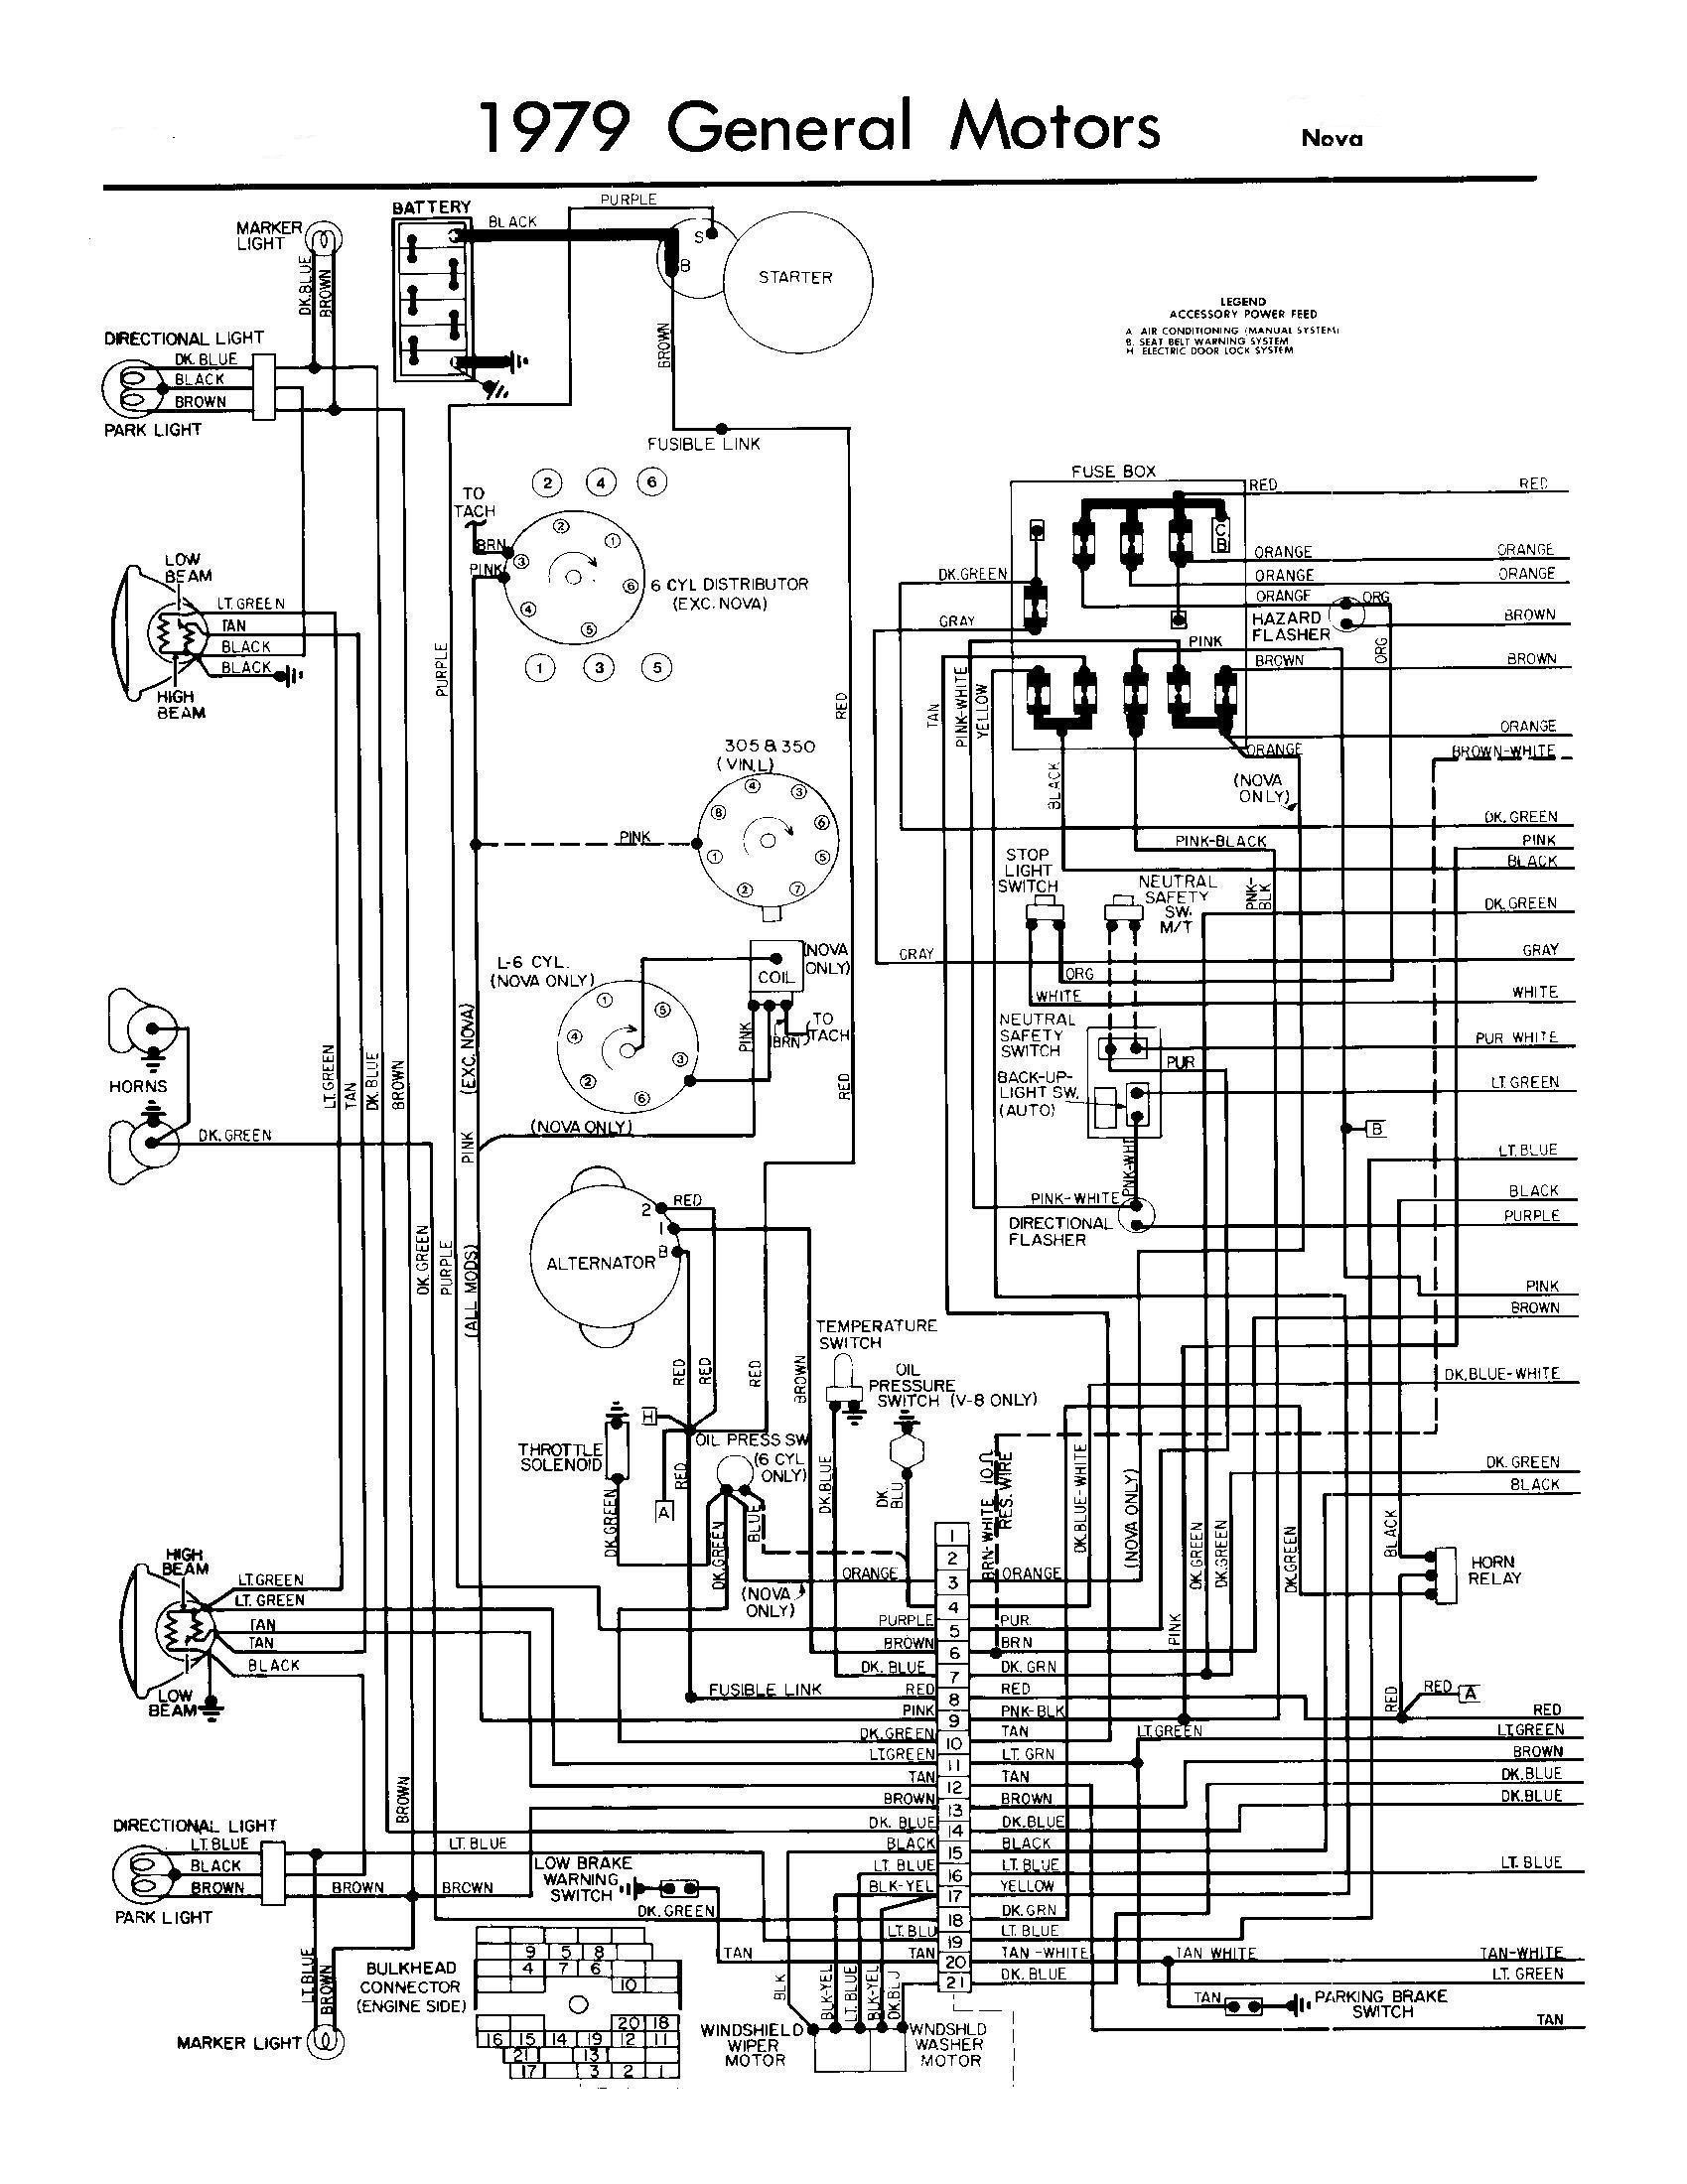 Chevy Truck Body Parts Diagram All Generation Wiring Schematics Chevy Nova forum Of Chevy Truck Body Parts Diagram